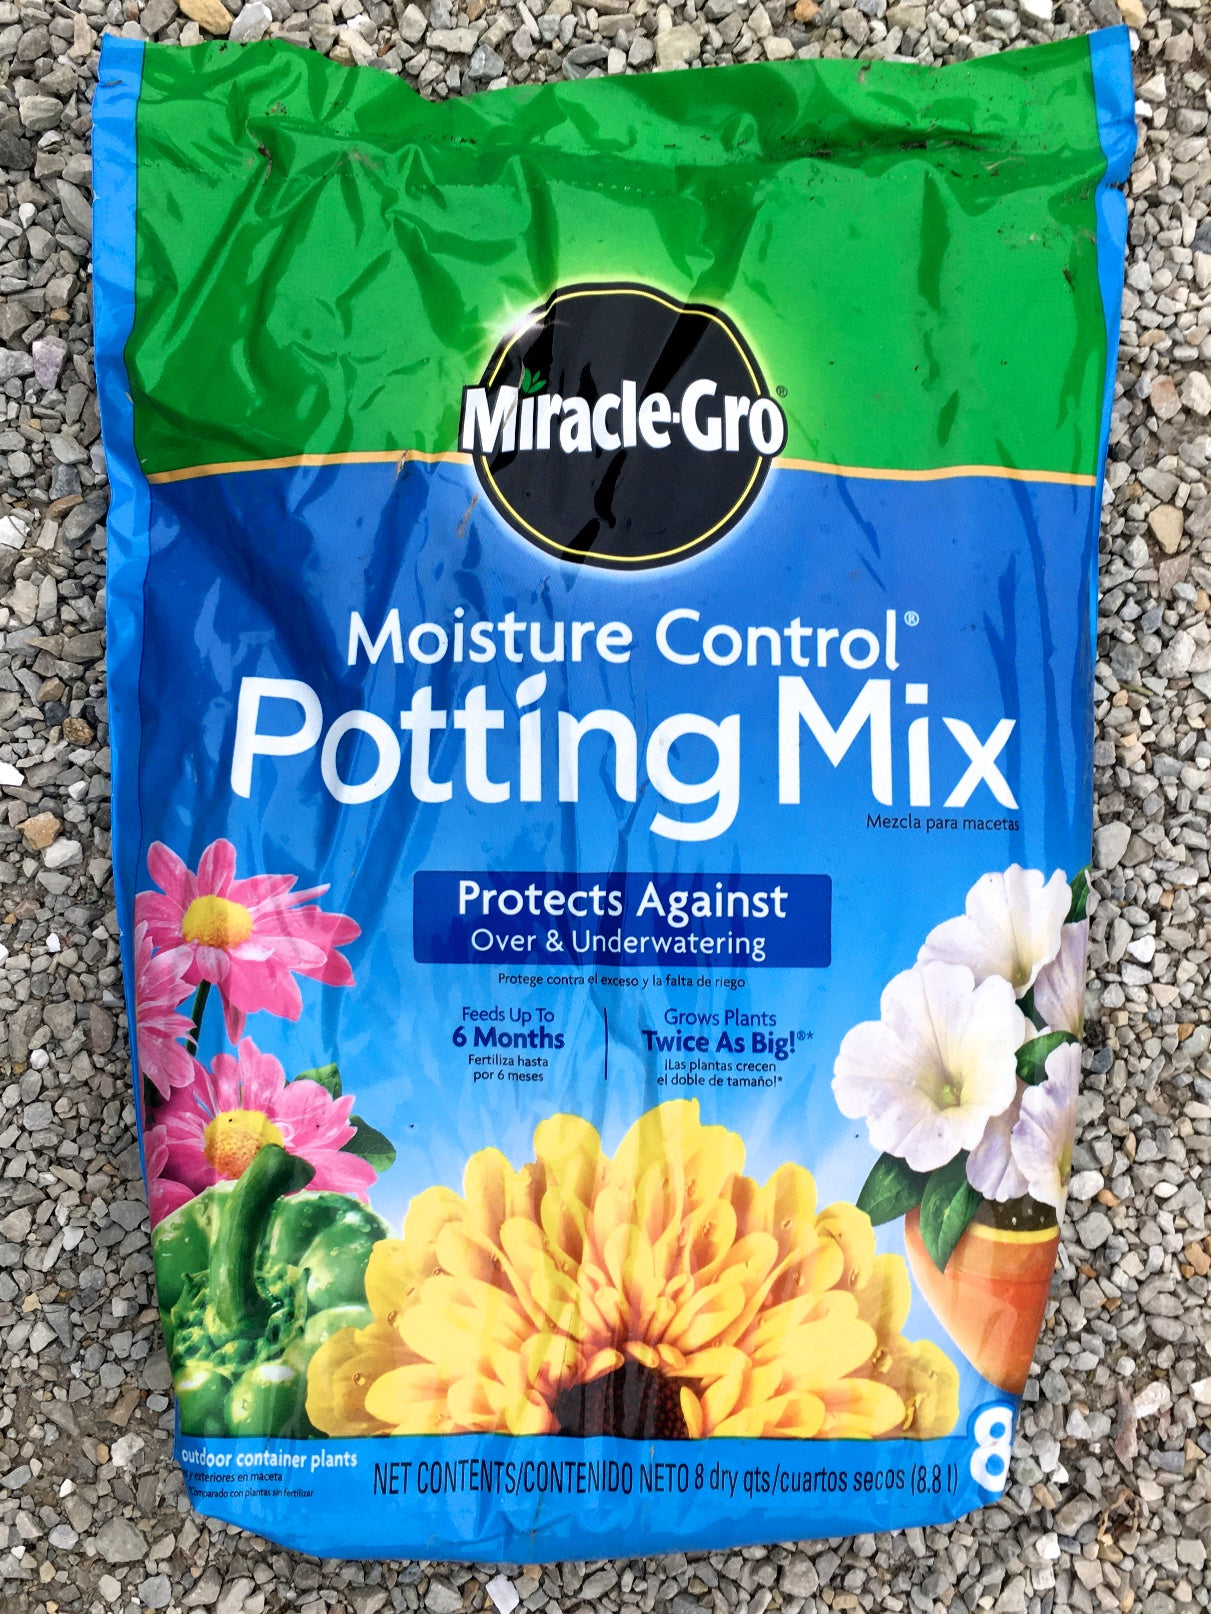 Miracle-Gro Moisture Control Potting Mix 8 qts.